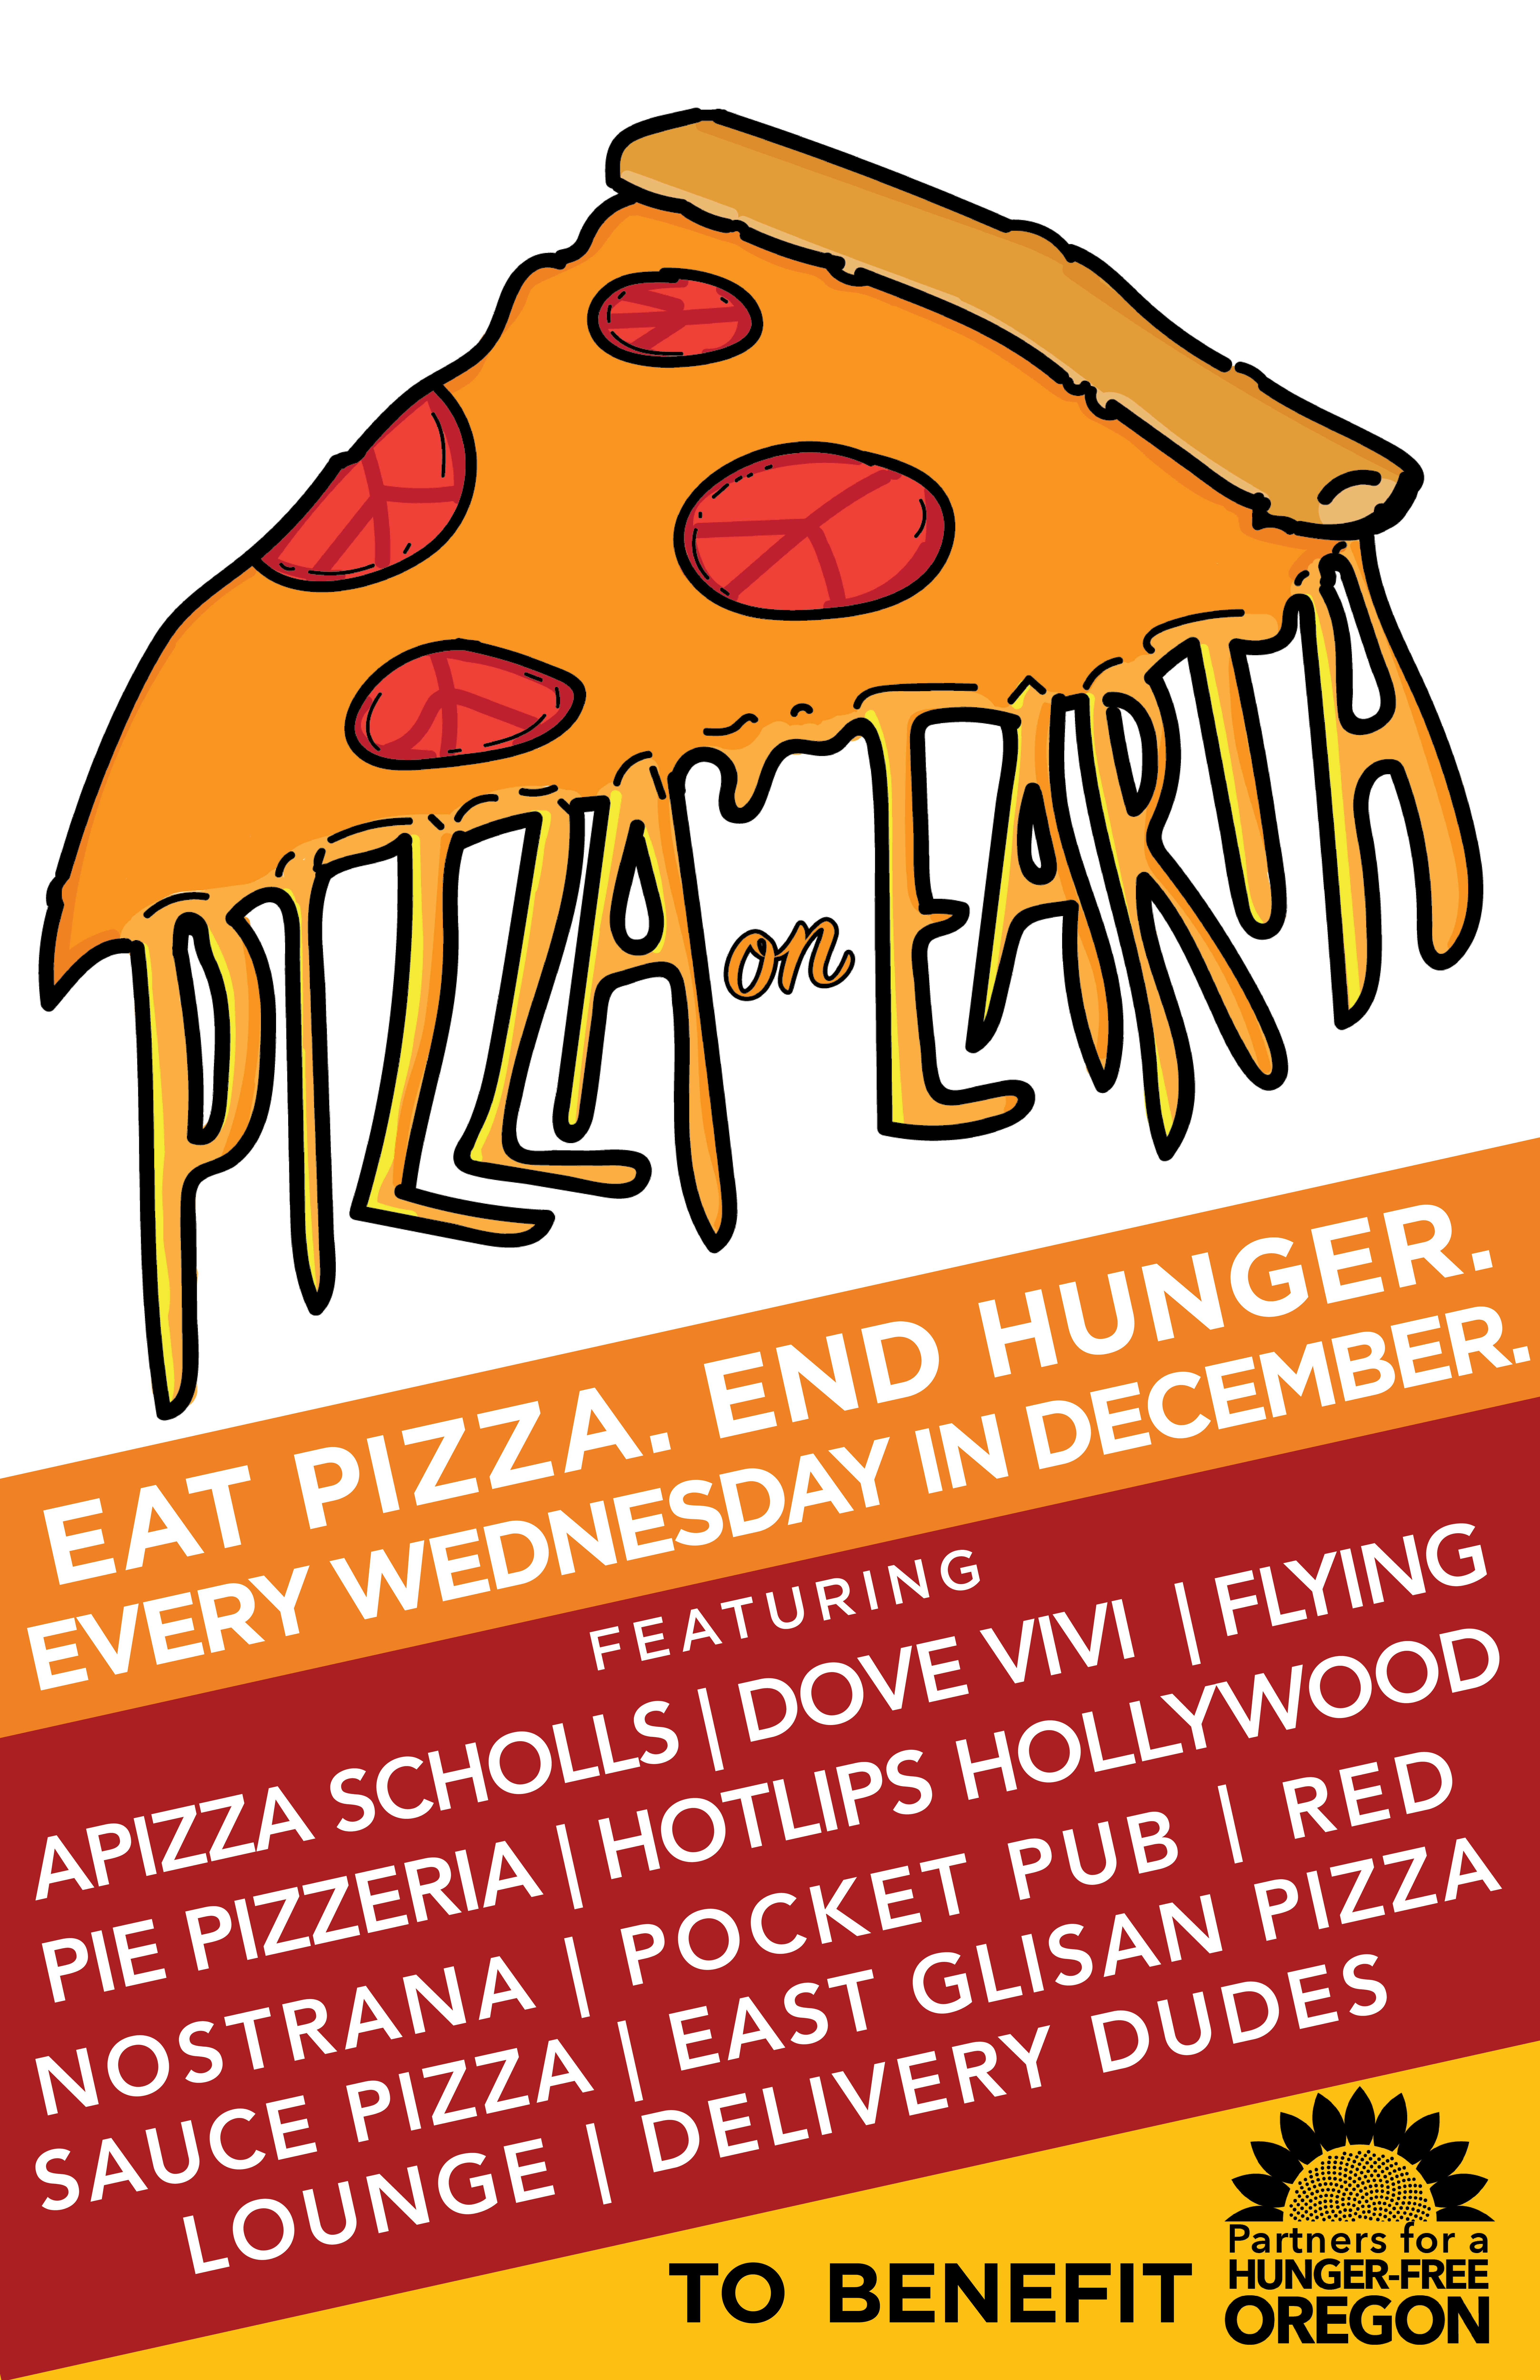 5e80b5dd012 Announcing Pizza on Earth 2018 - Partners for a Hunger-Free Oregon